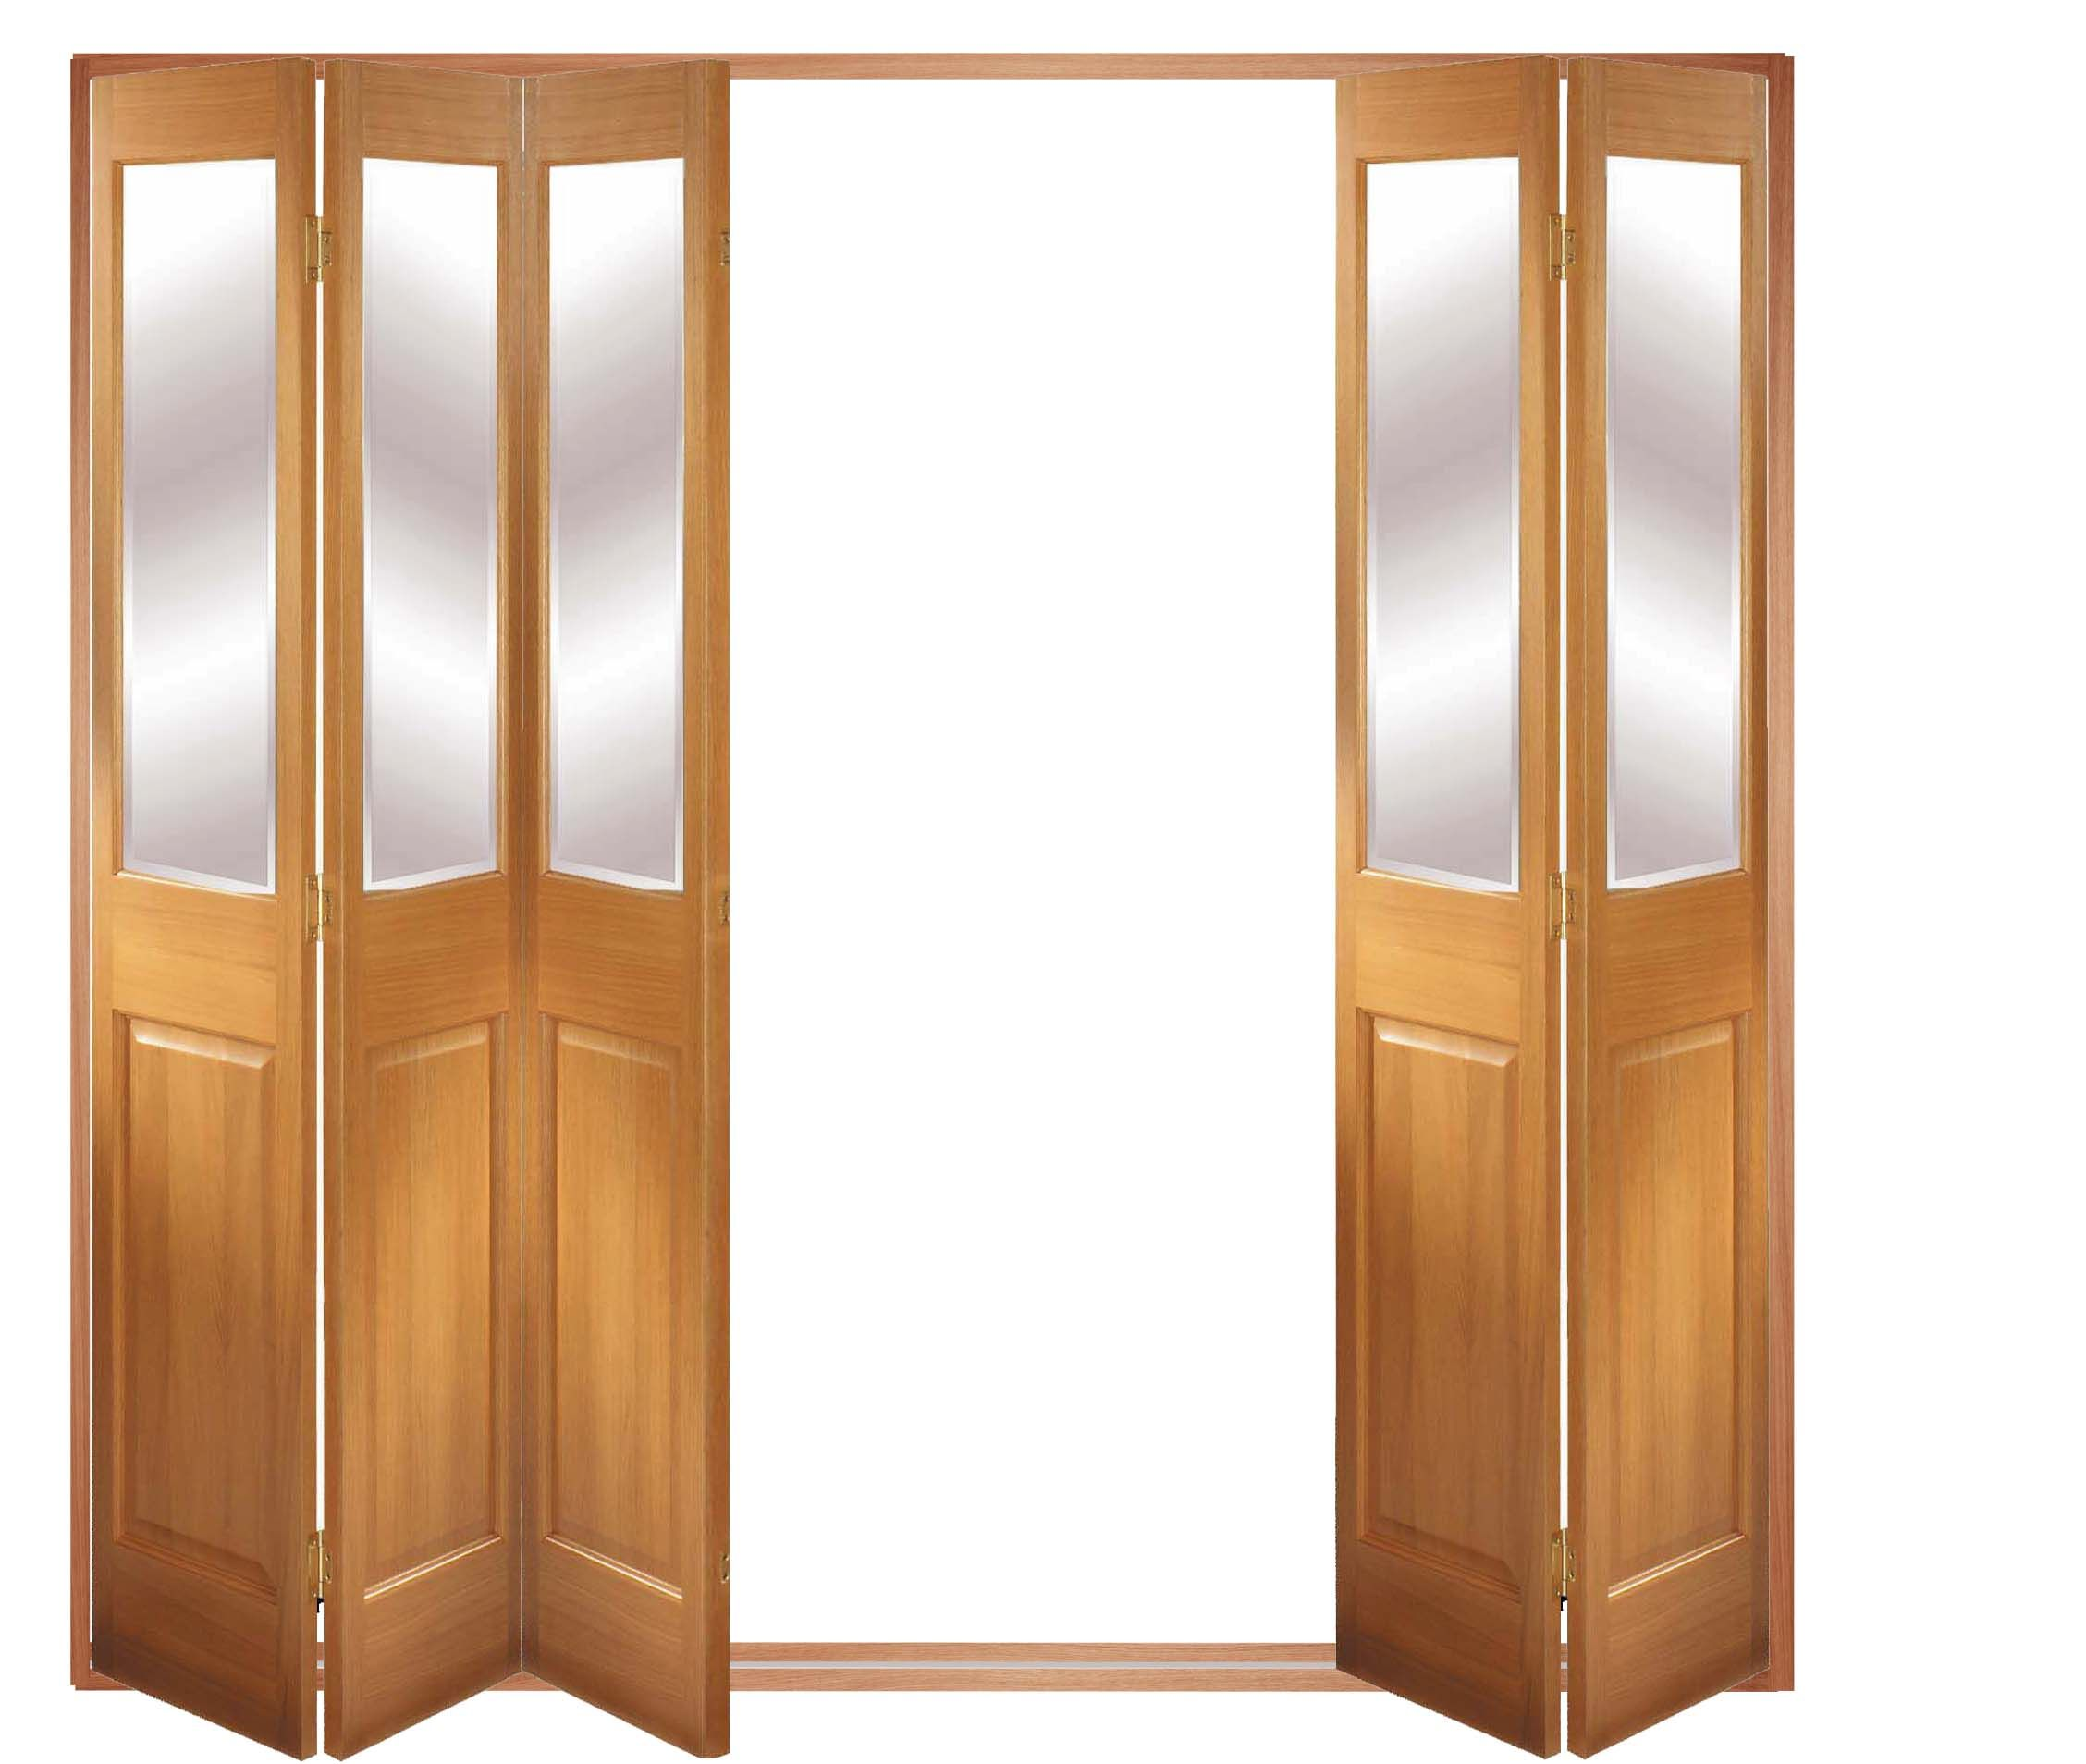 Narrow french doors interior google search upstairs for Narrow french patio doors